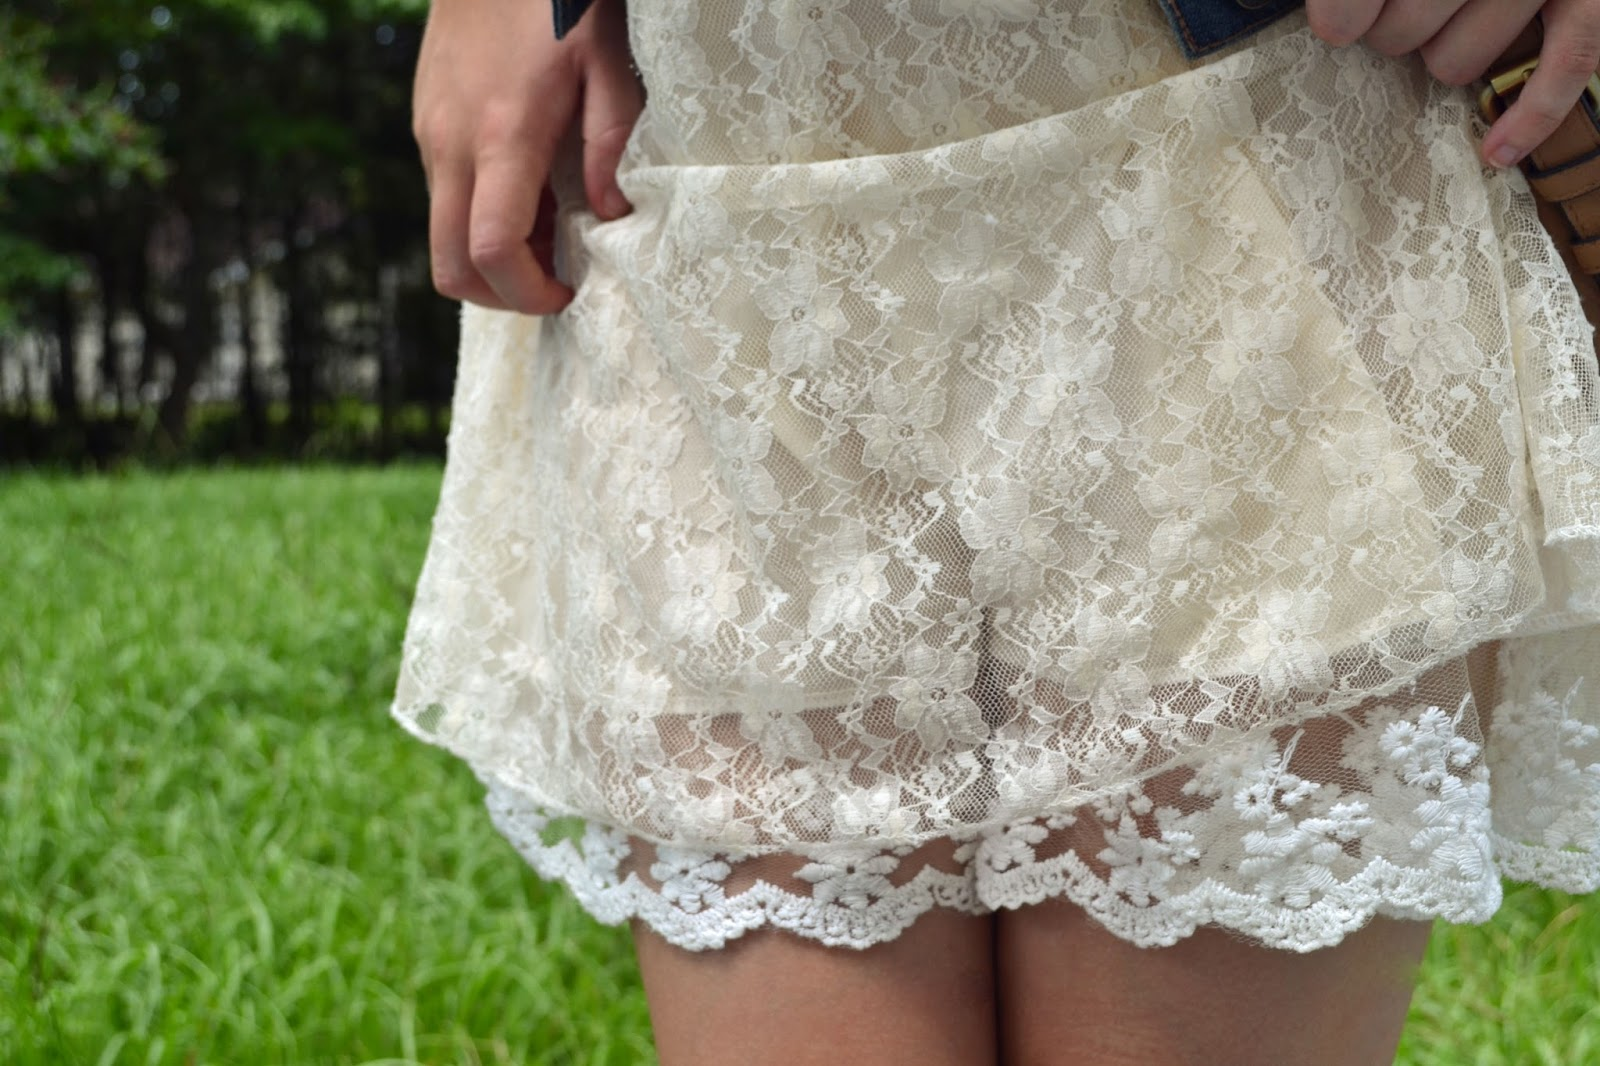 lace dress, lace, detail, detail shot, lace layers, creme, khaki, tan, legs, hands, outfit, beautiful